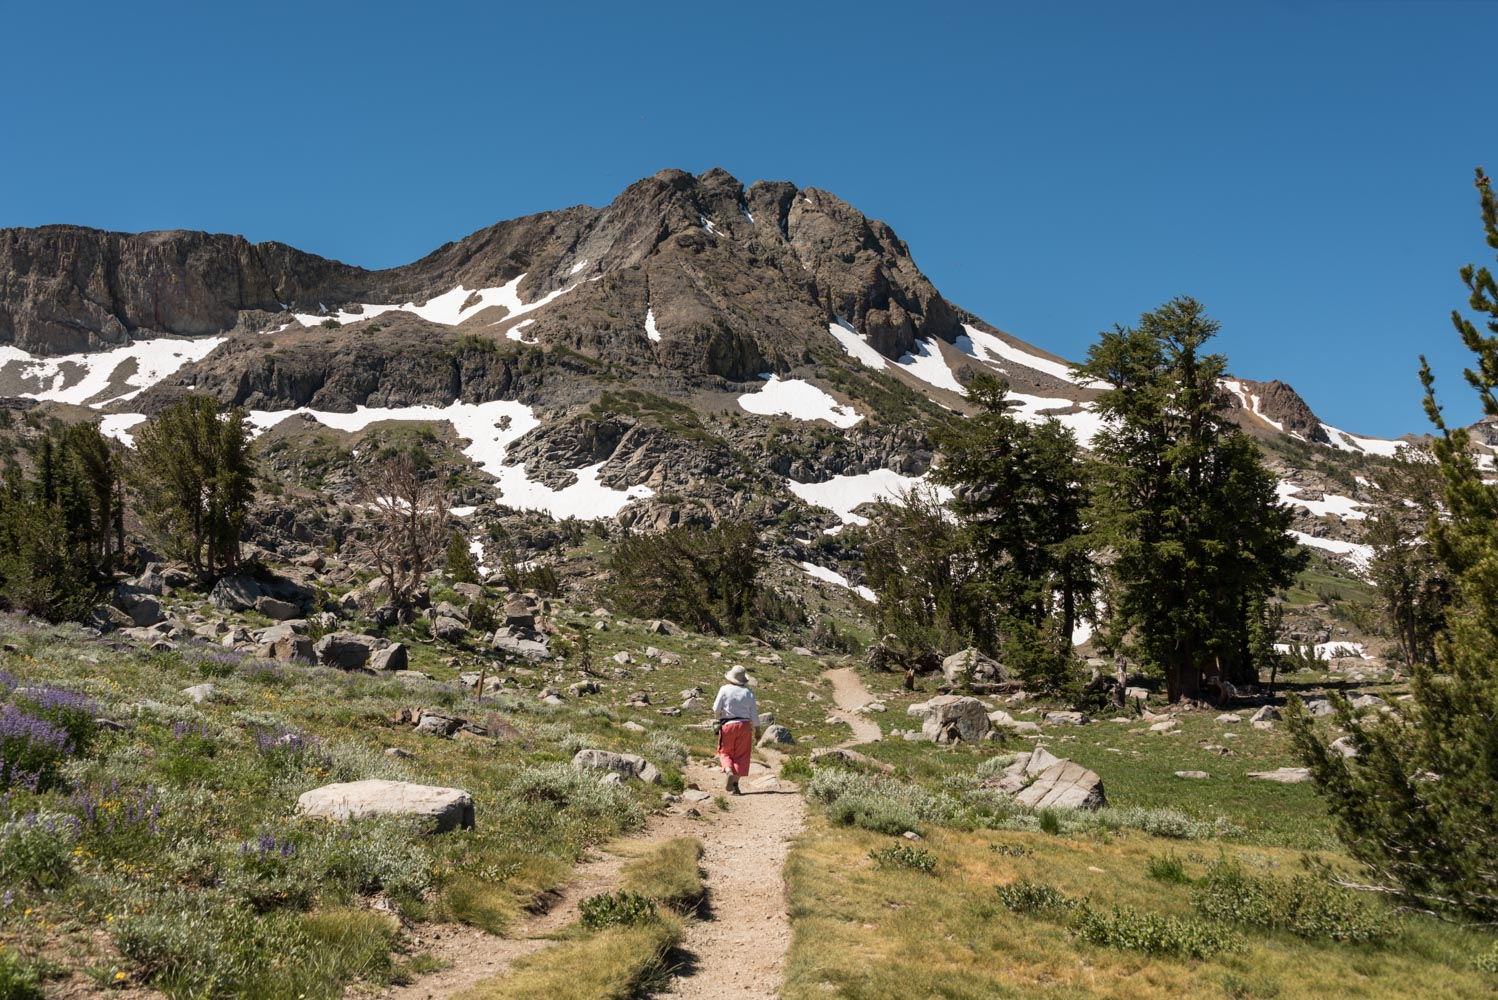 Landscape image of mountain trail leading to snow-covered mountain, at Carson Pass, California.